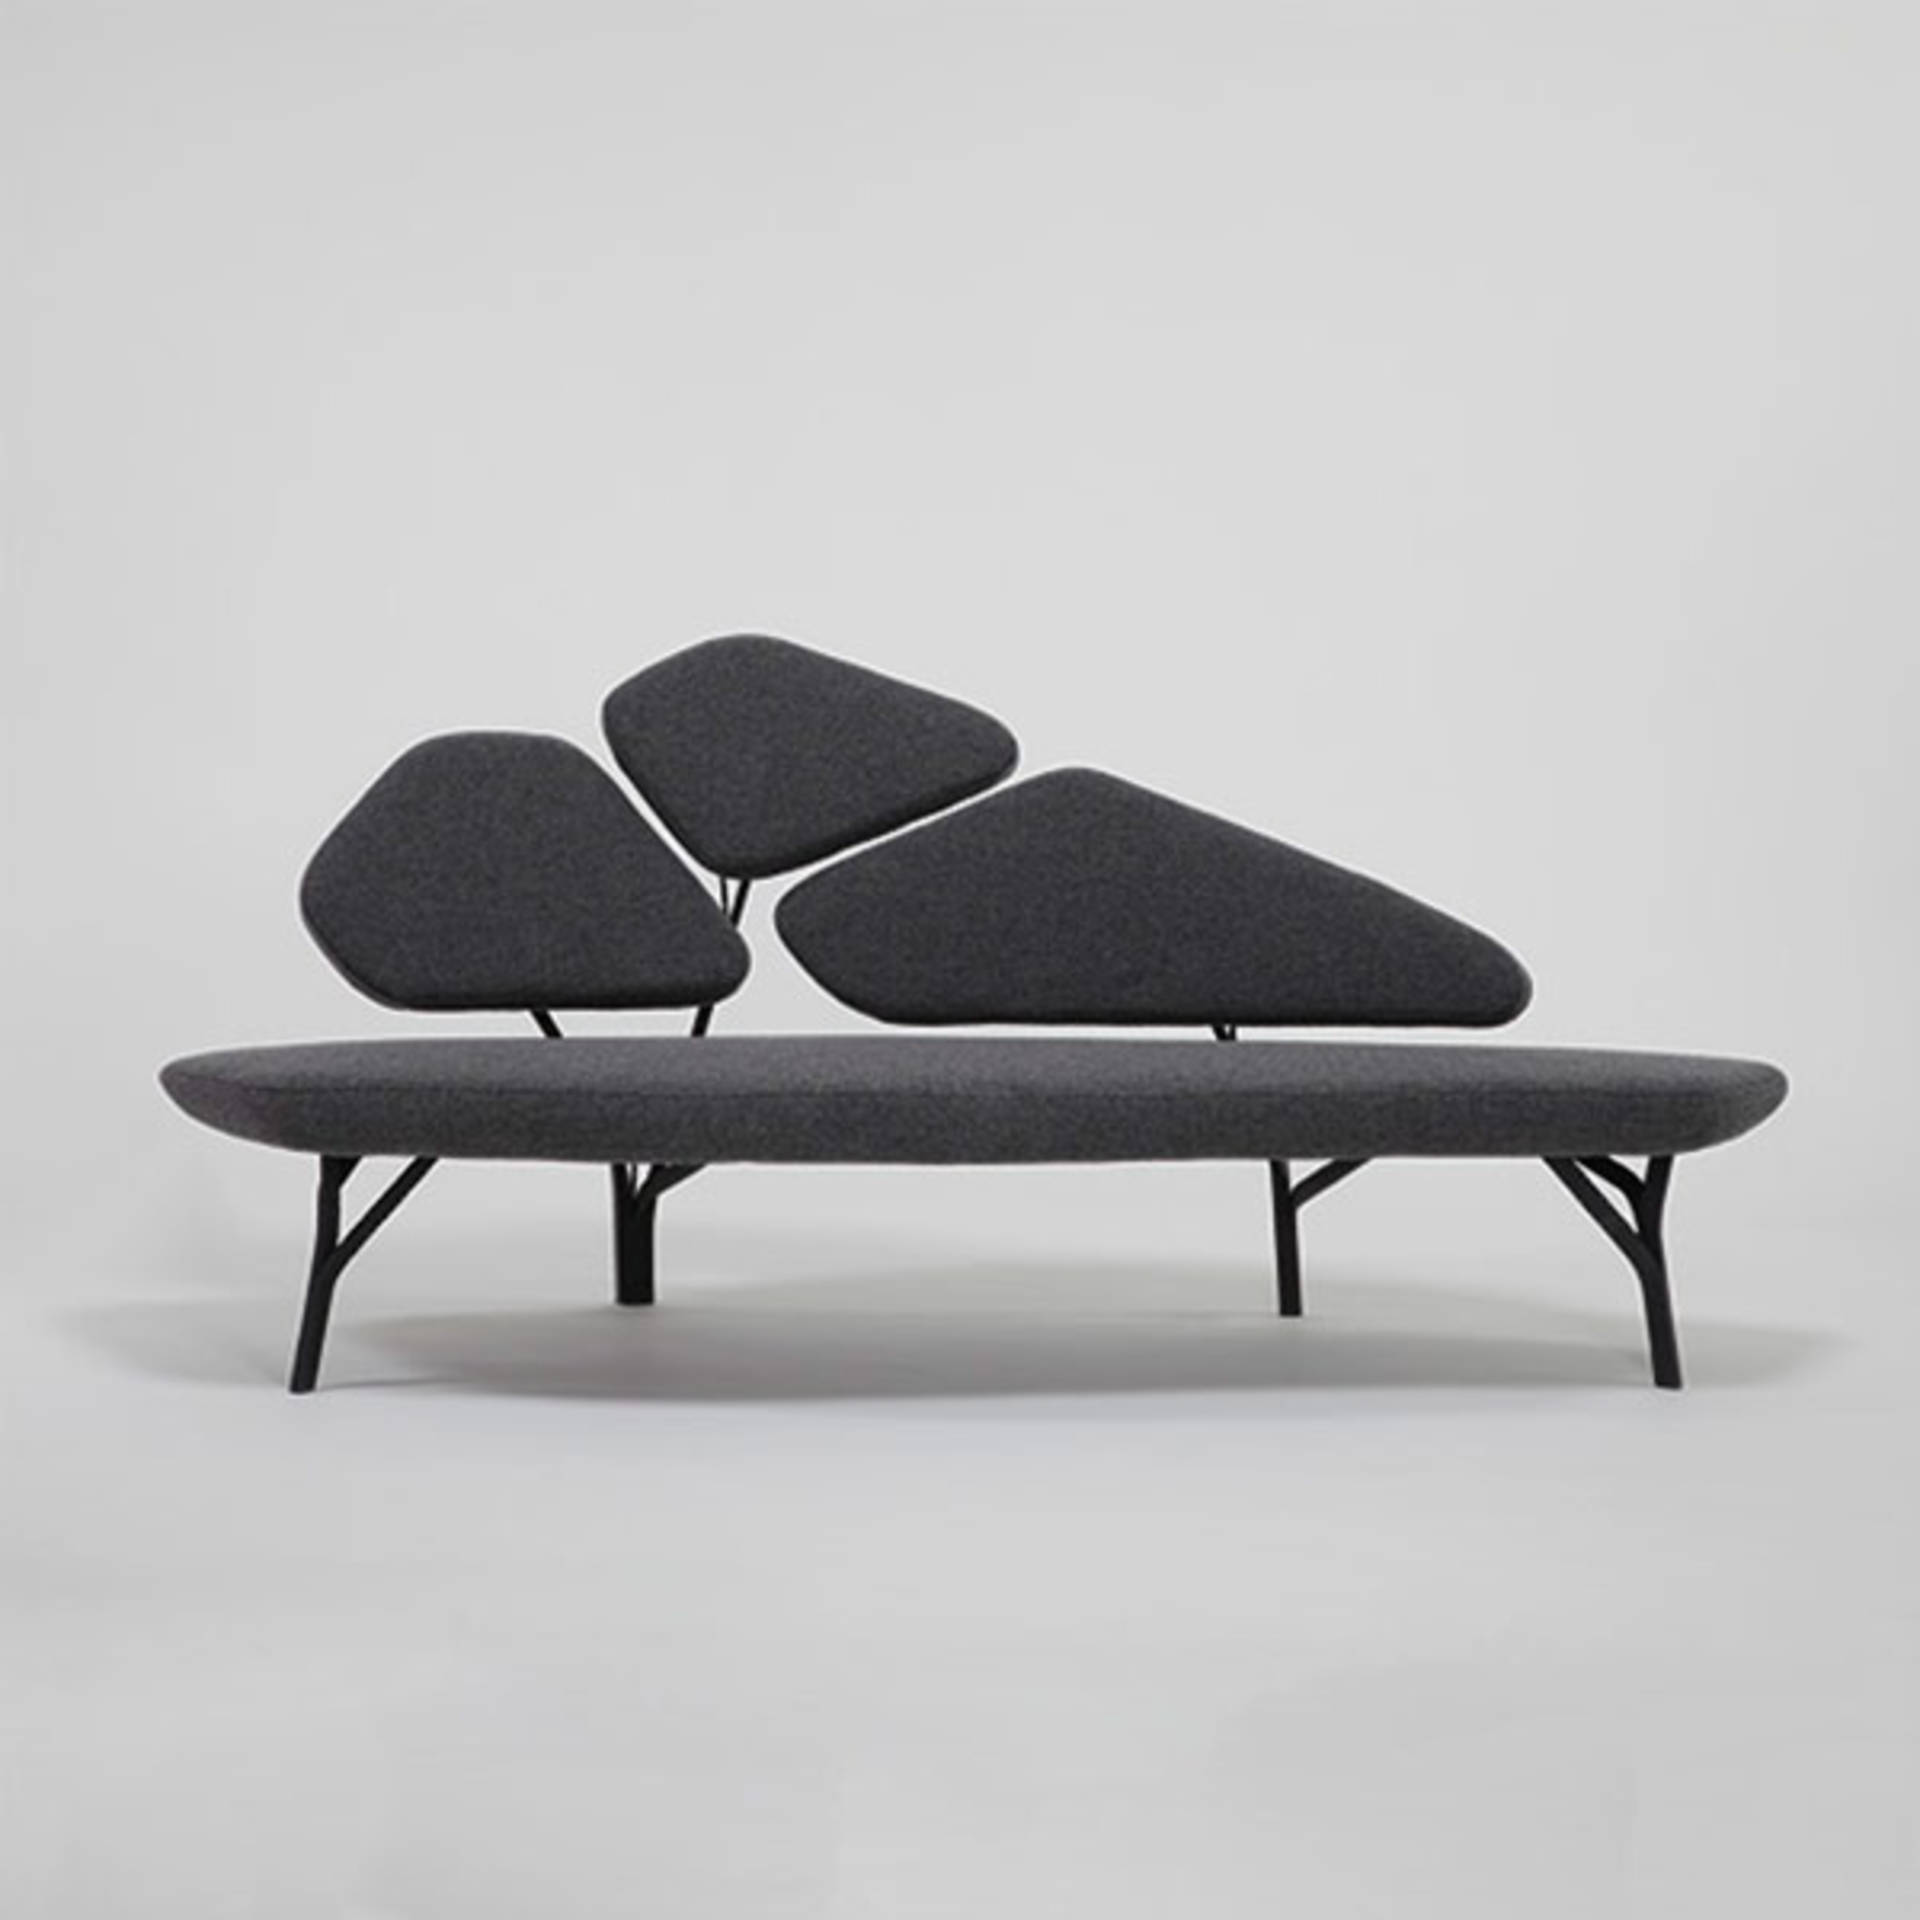 Borghese Sofa Shaped Stone Pine Tree By Noé Duchaufour Lawrance